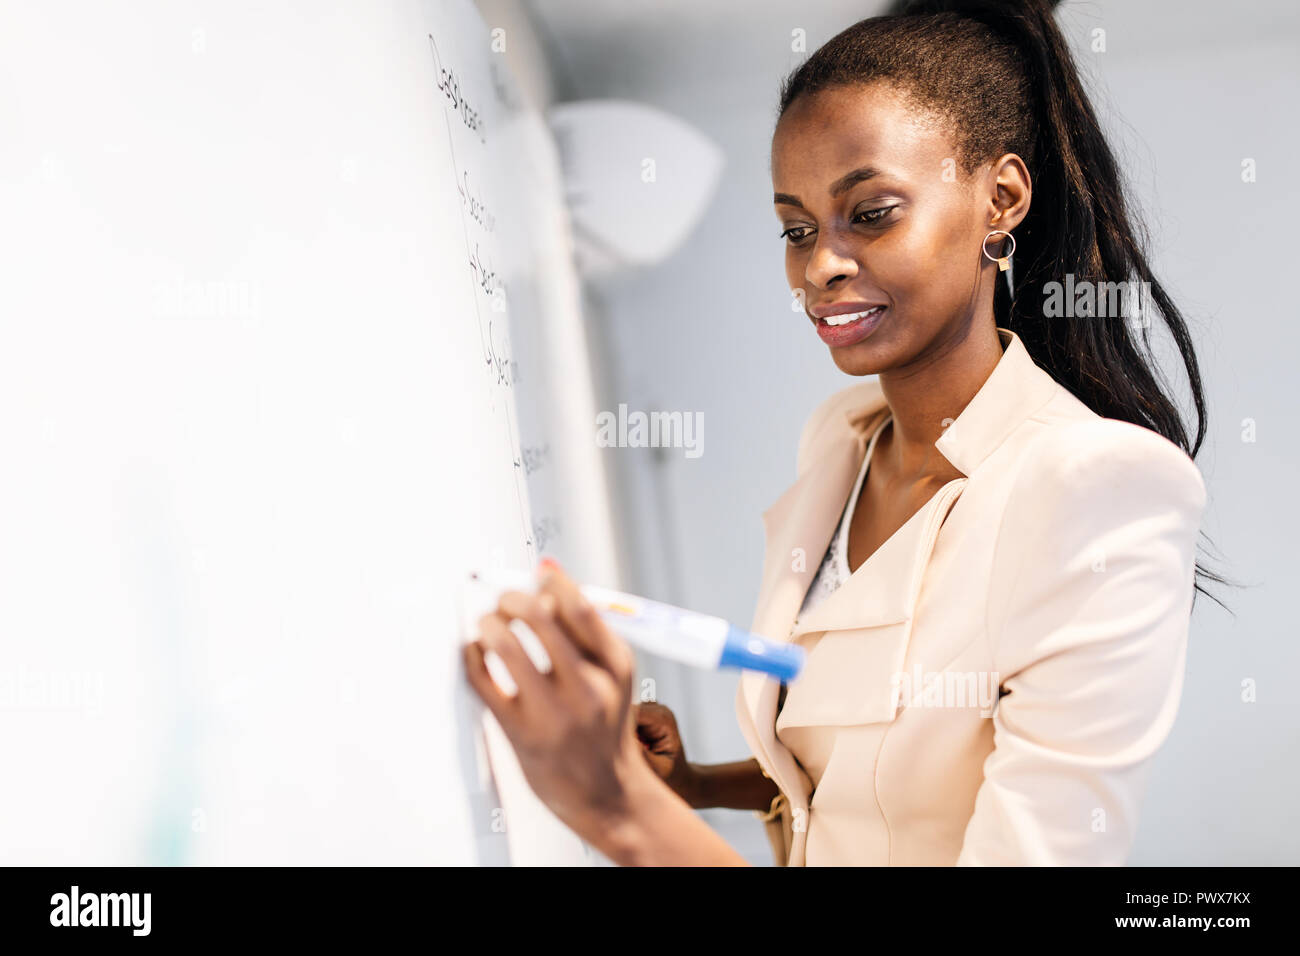 Coming up with new ideas - Stock Image